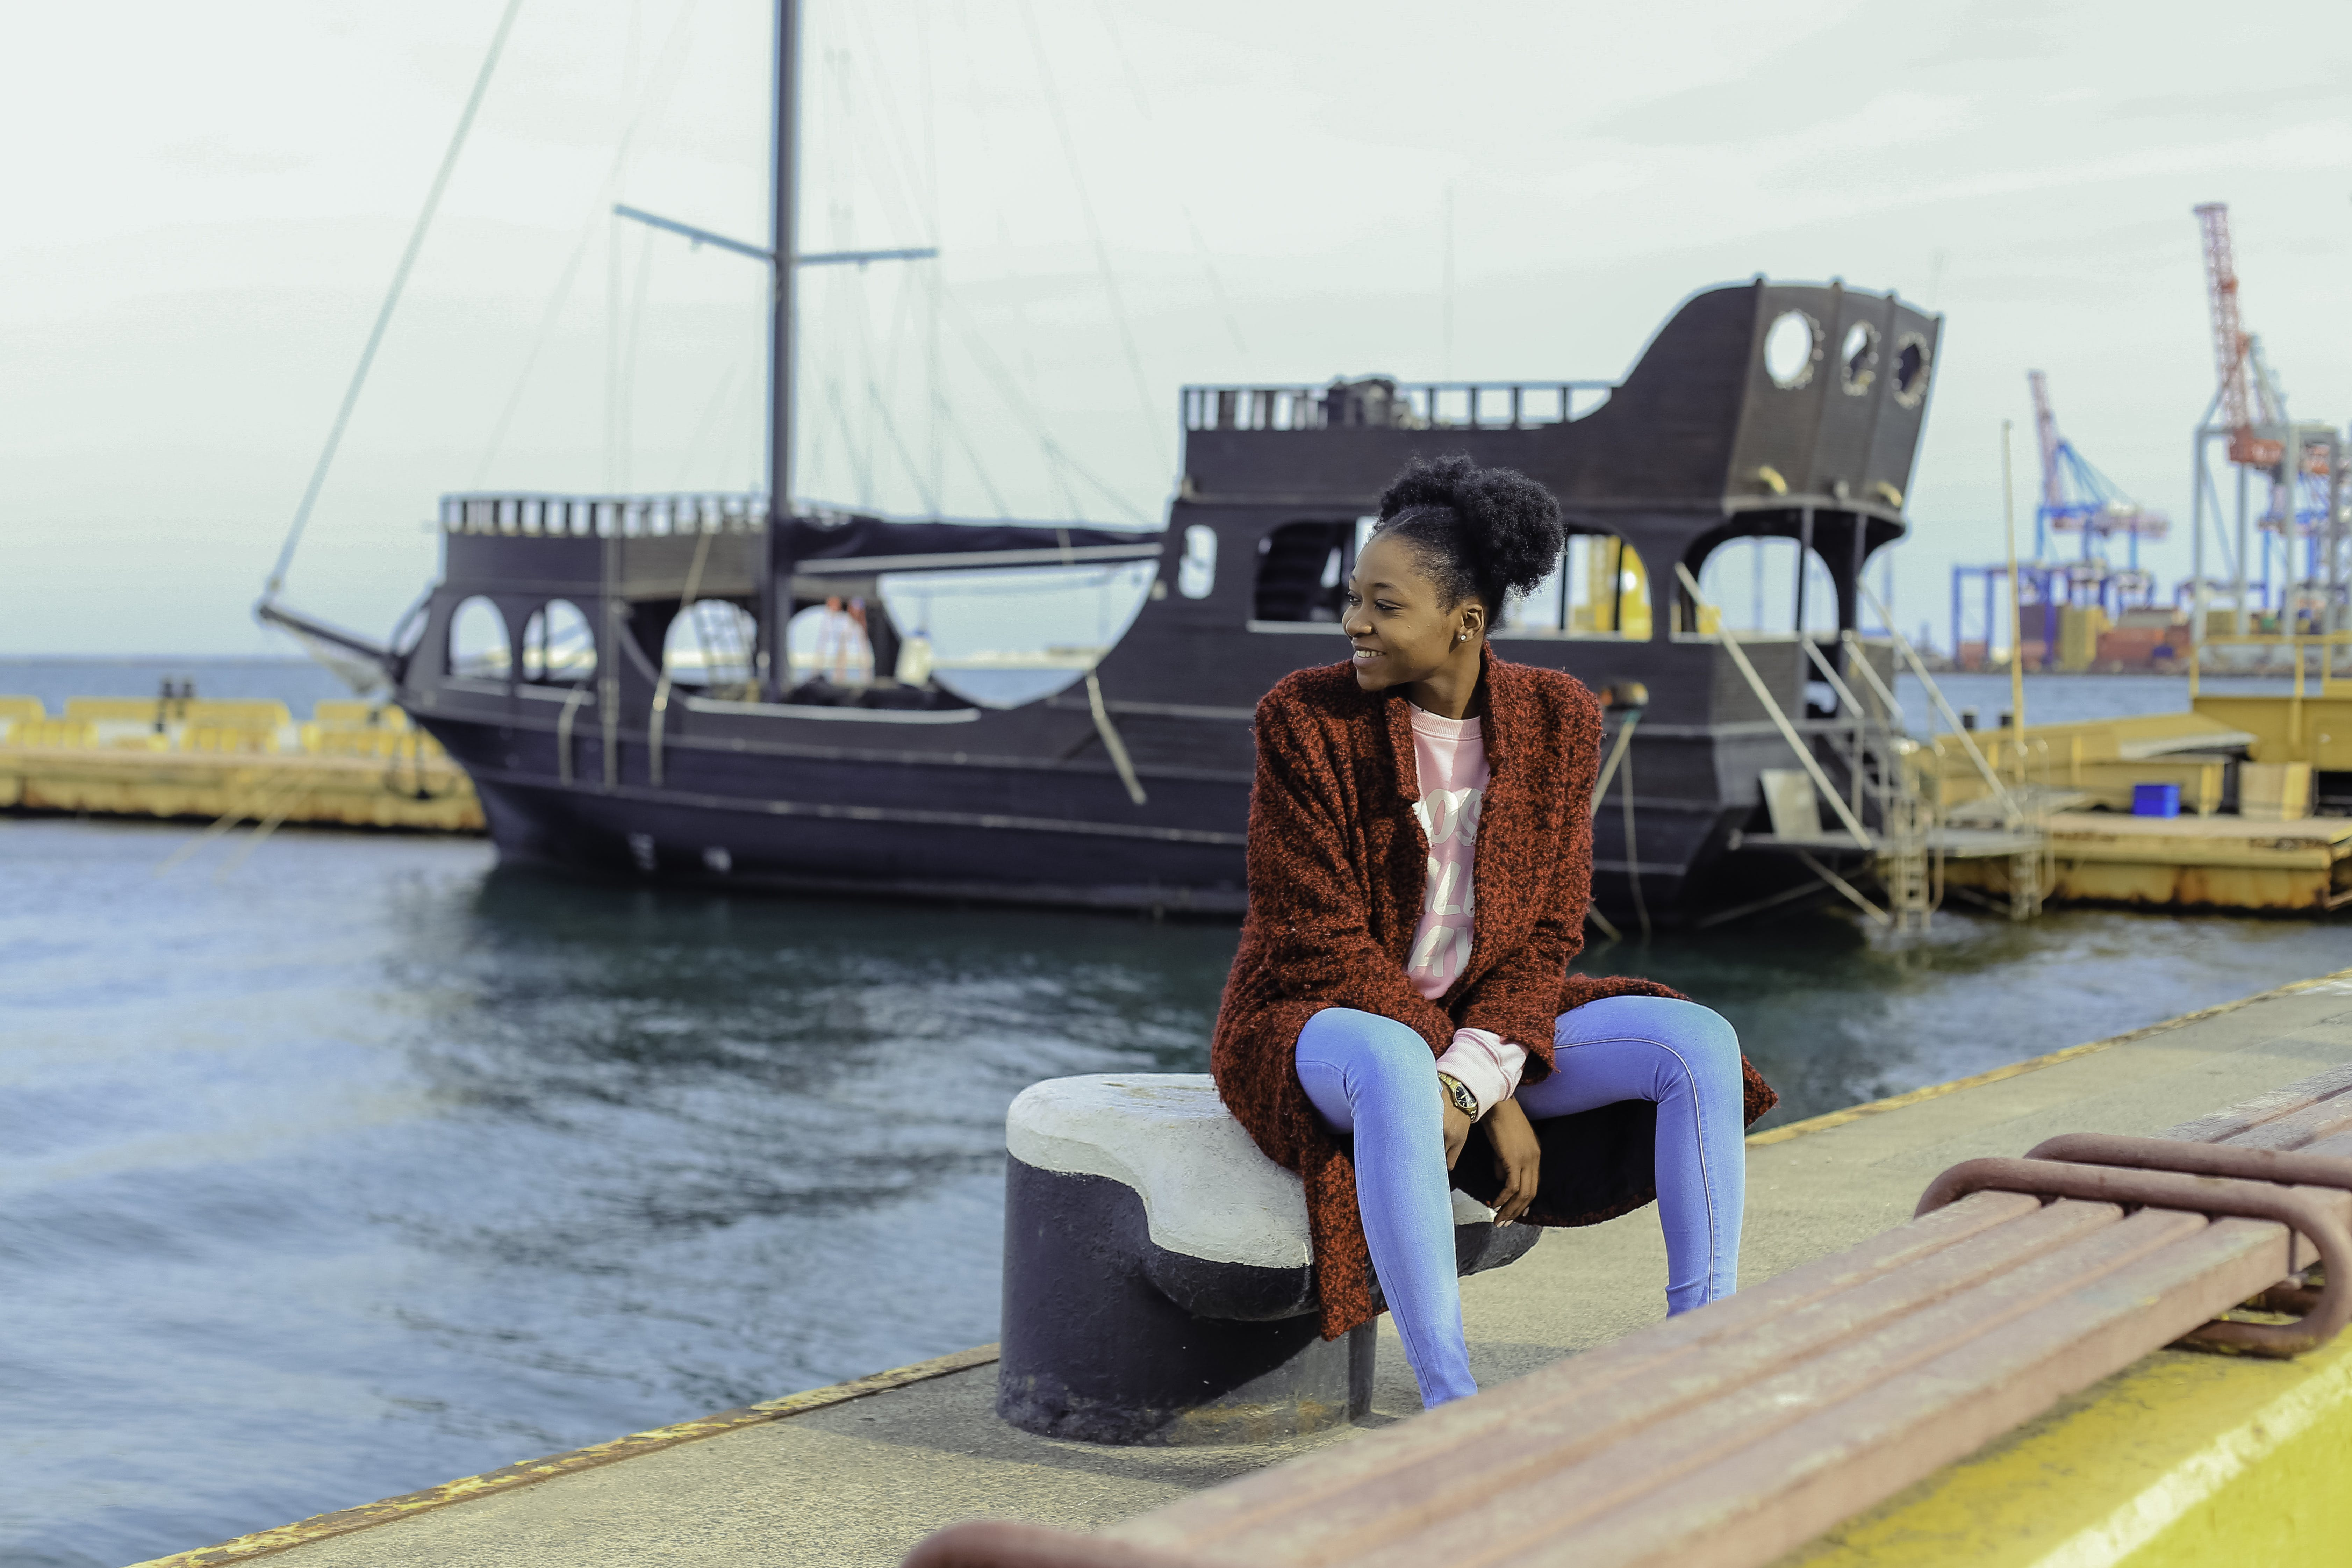 Woman in Red Cardigan Sitting on Black Metal Near Boats